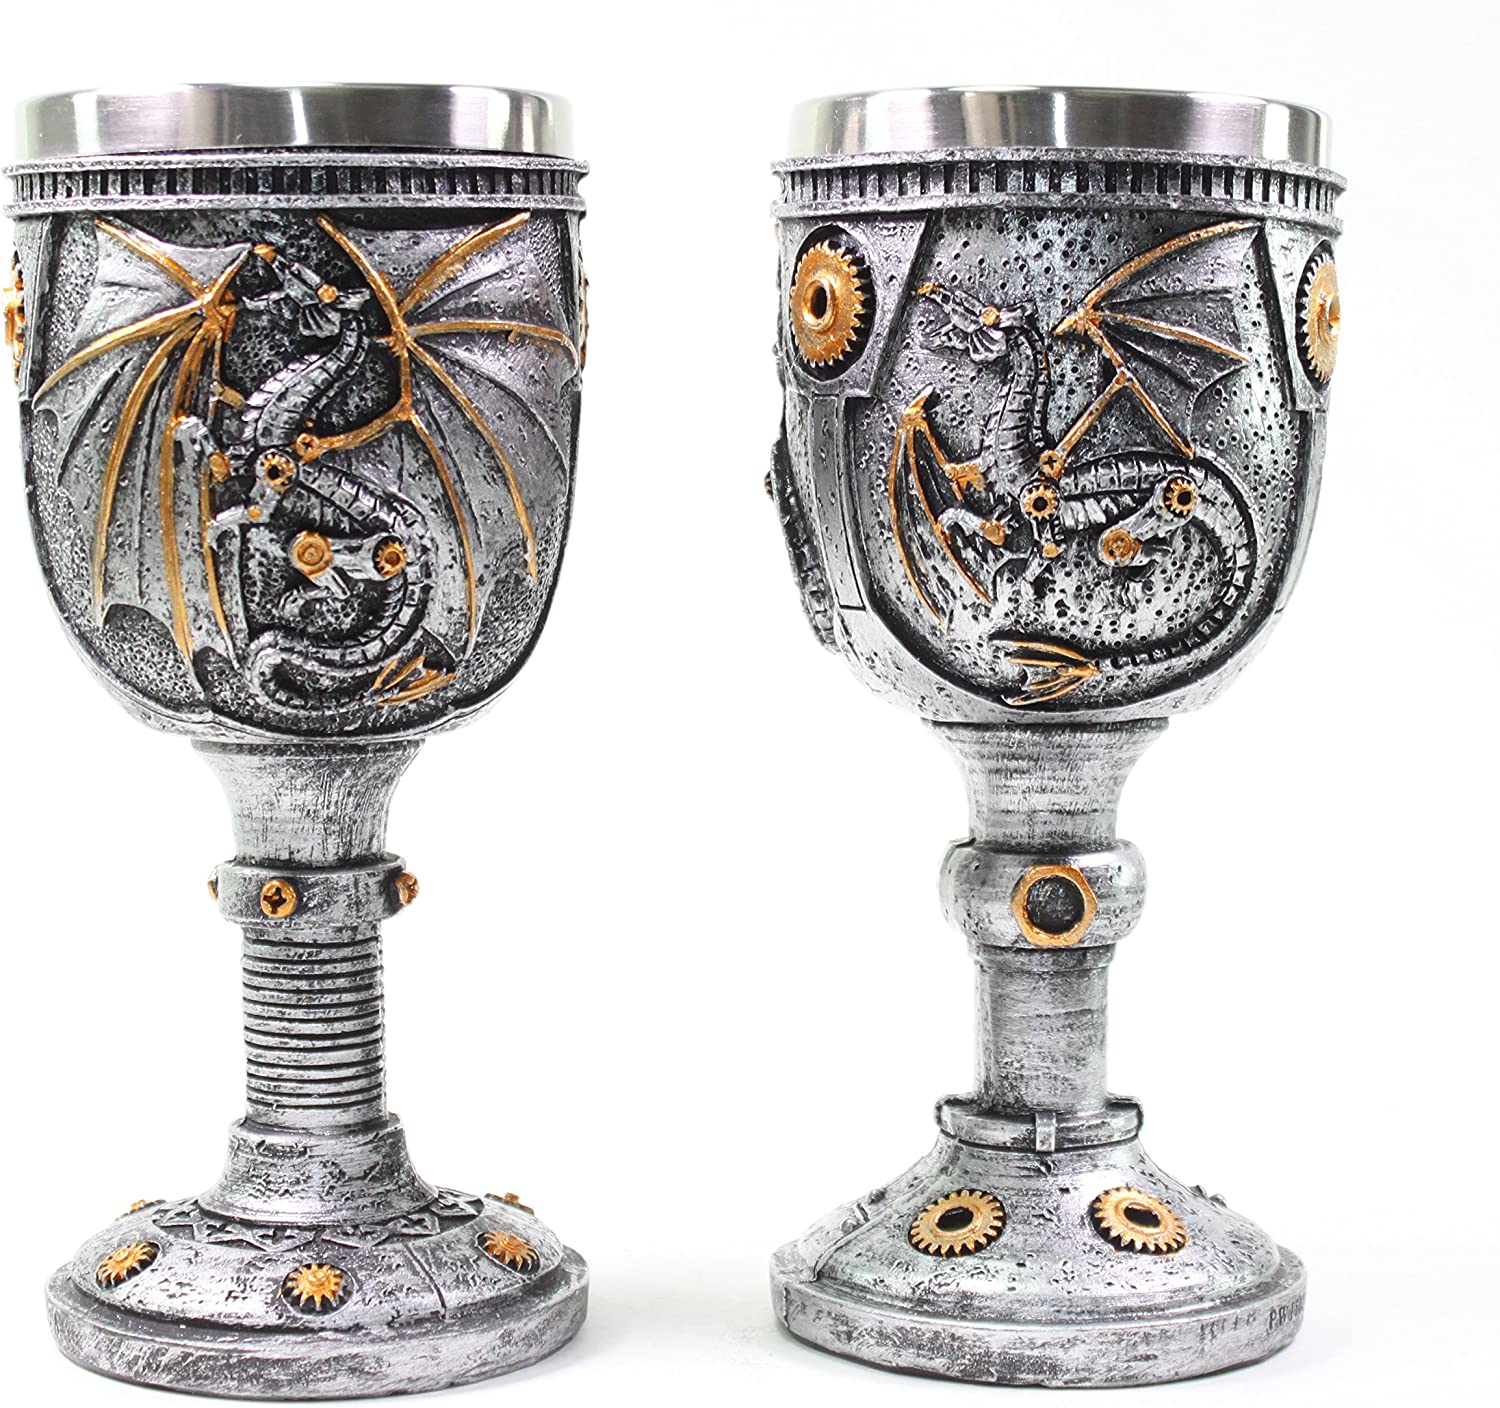 Mythical Silver Royal Dragon Wine Goblet Skulls Medieval Collectible Magical Halloween Party Home Decor Gift